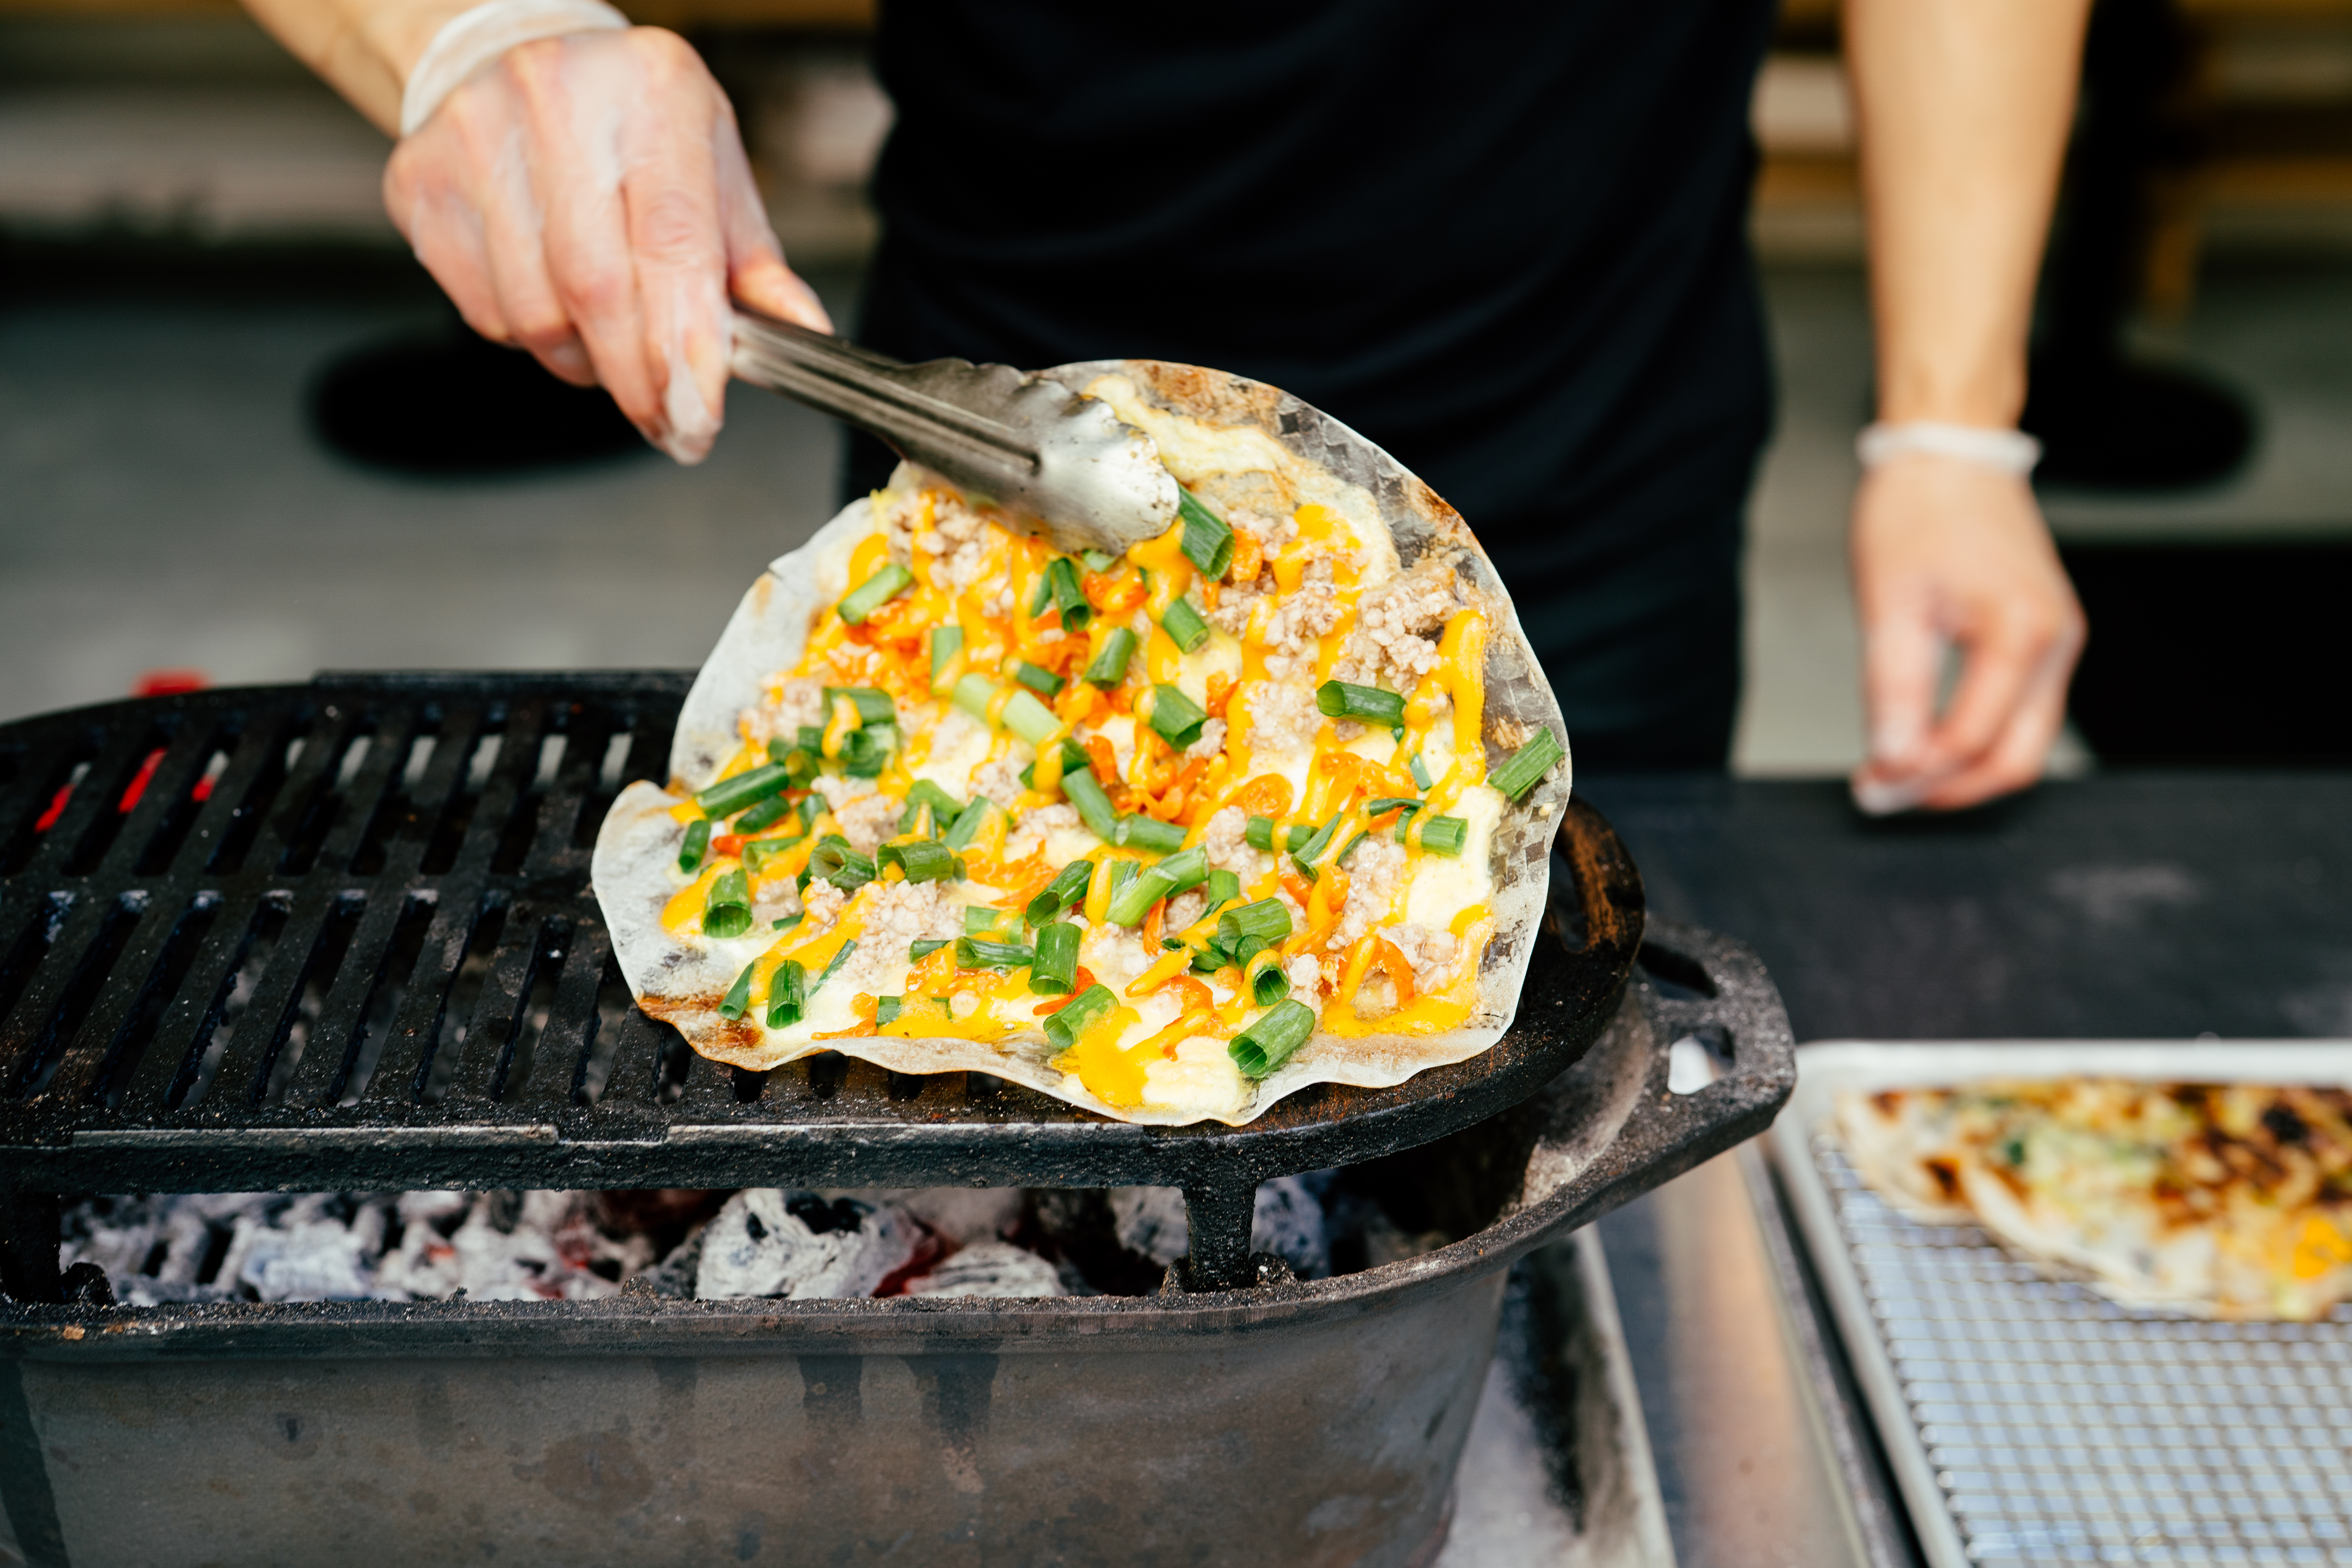 A man holds up a crackly rice cracker, covered in yellow egg, green onions, and crumbles of meat, over a small charcoal grill. This is from the Berlu pop-up featuring bánh tráng nướng